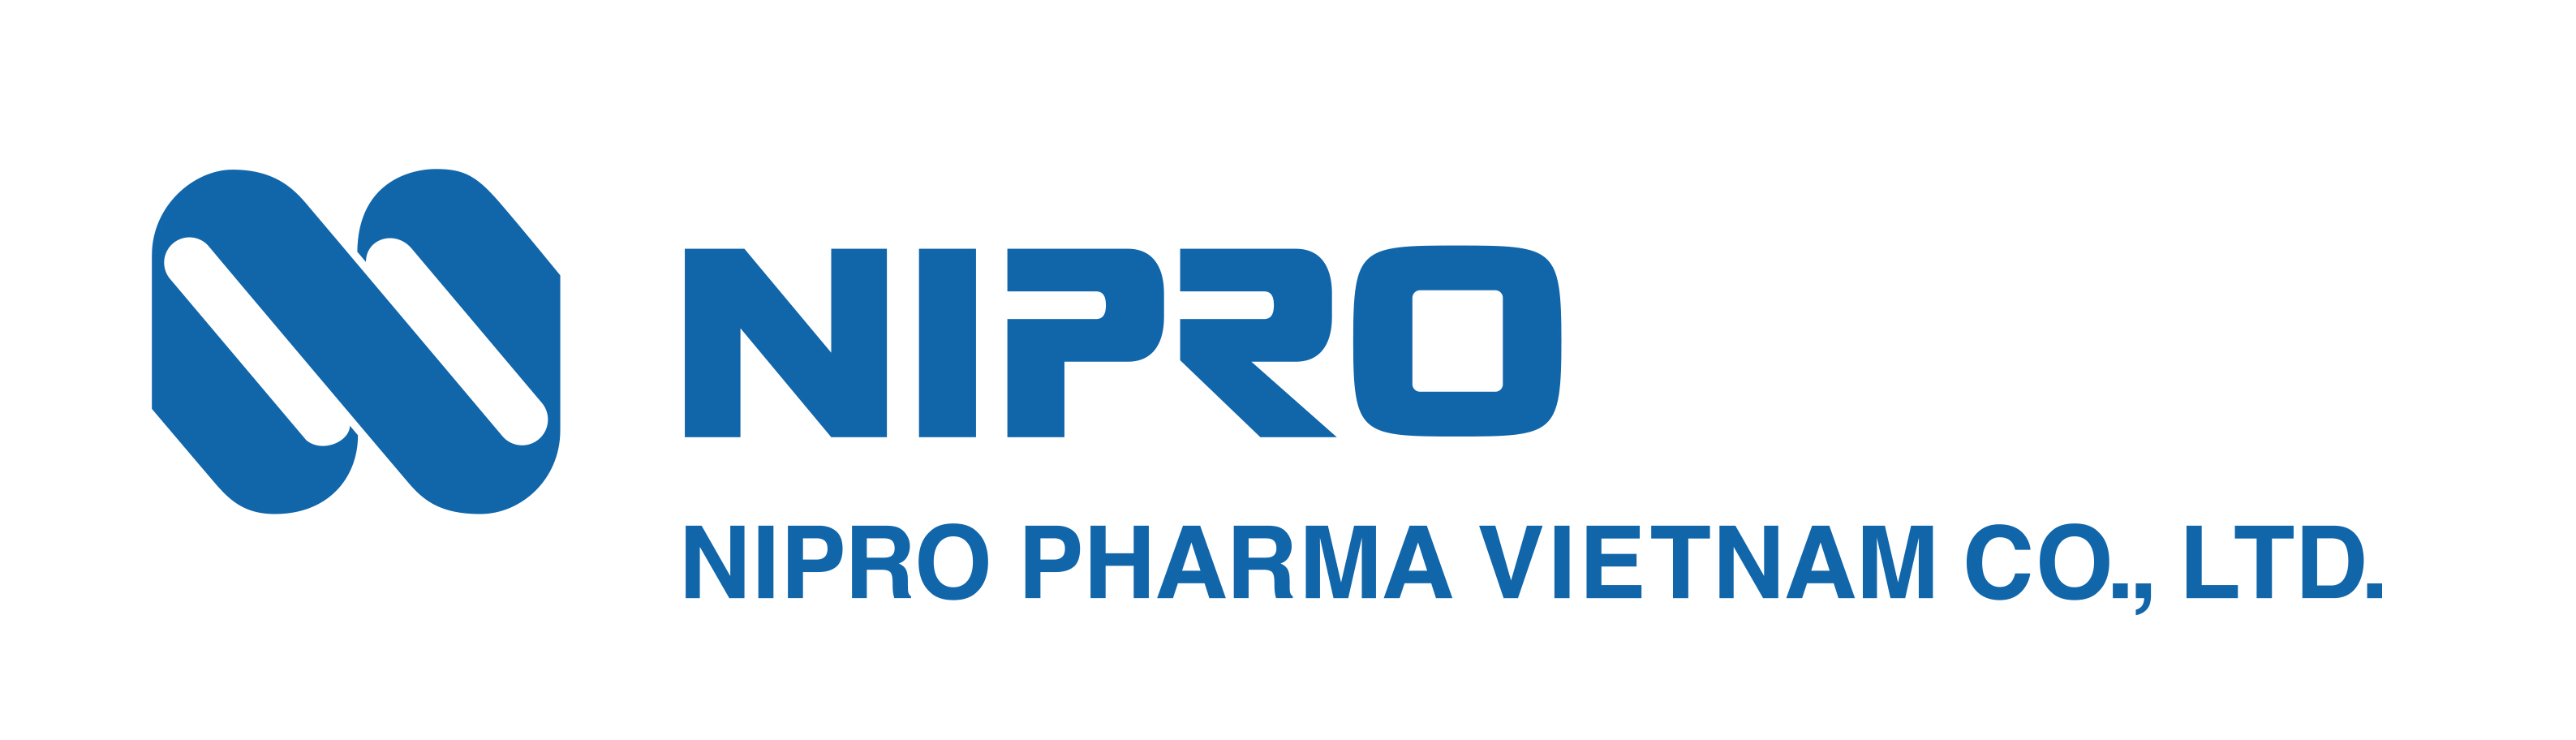 Nipro Pharma Vietnam Co.,Ltd.ロゴ